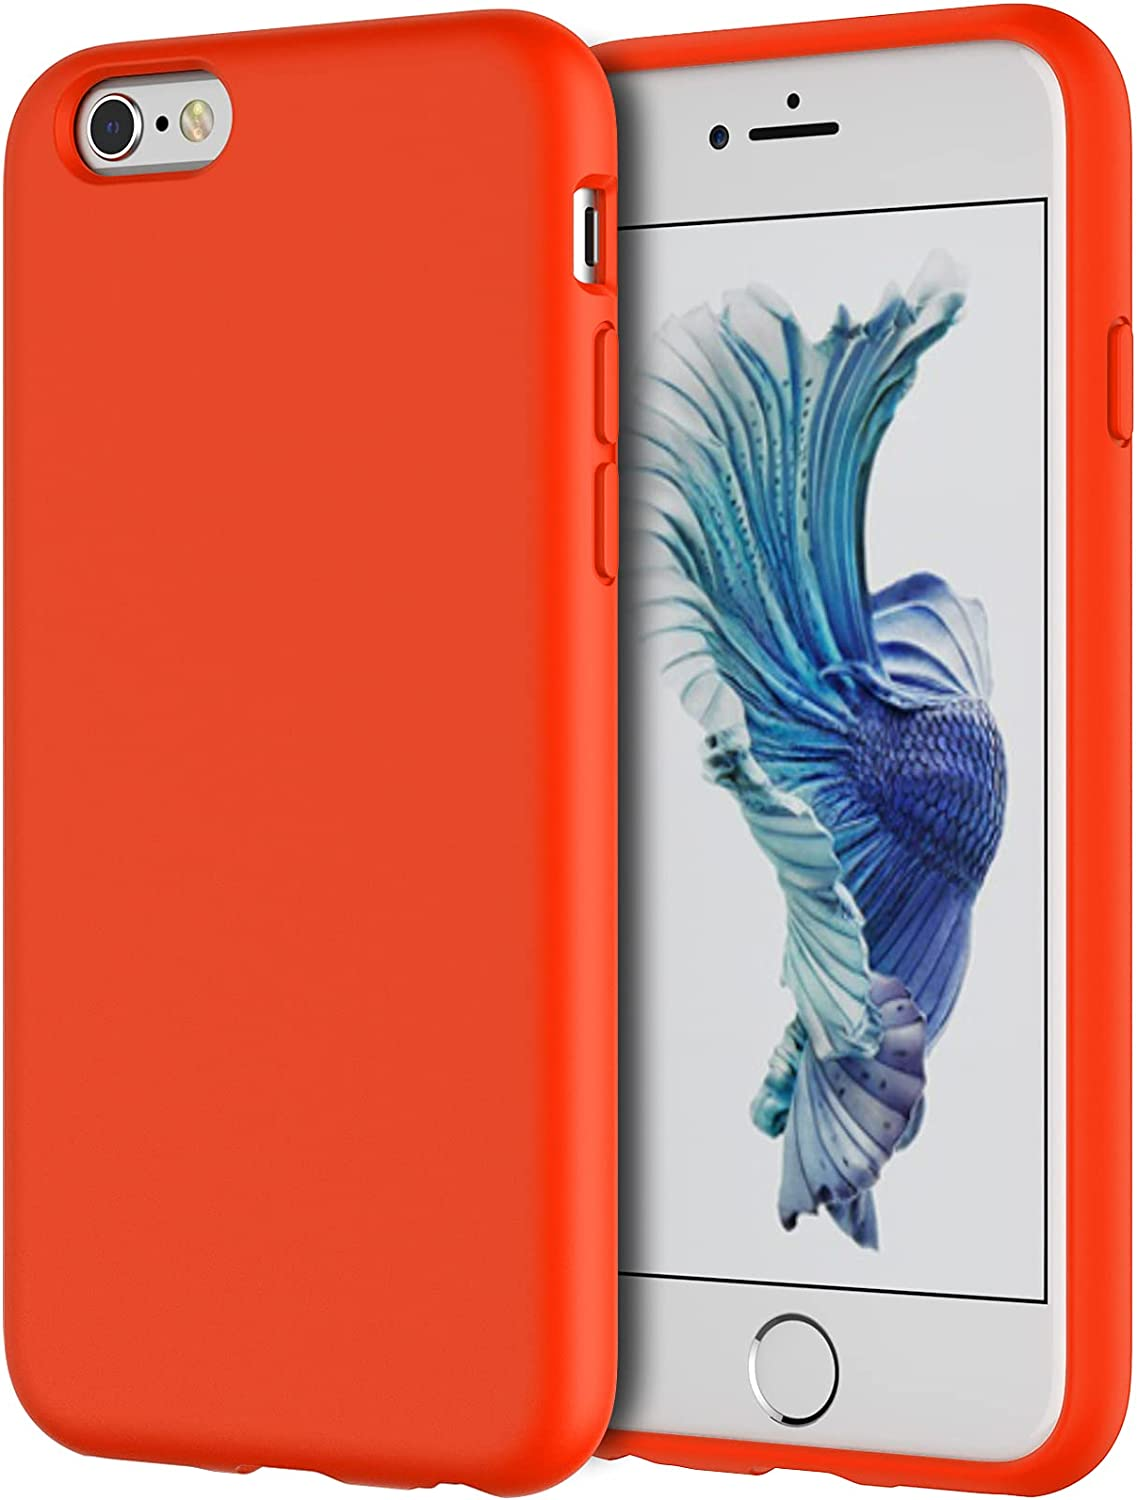 JETech Silicone Case Compatible with iPhone 6s/6 4.7 Inch, Silky-Soft Touch Full-Body Protective Case, Shockproof Cover with Microfiber Lining (Orange Red)